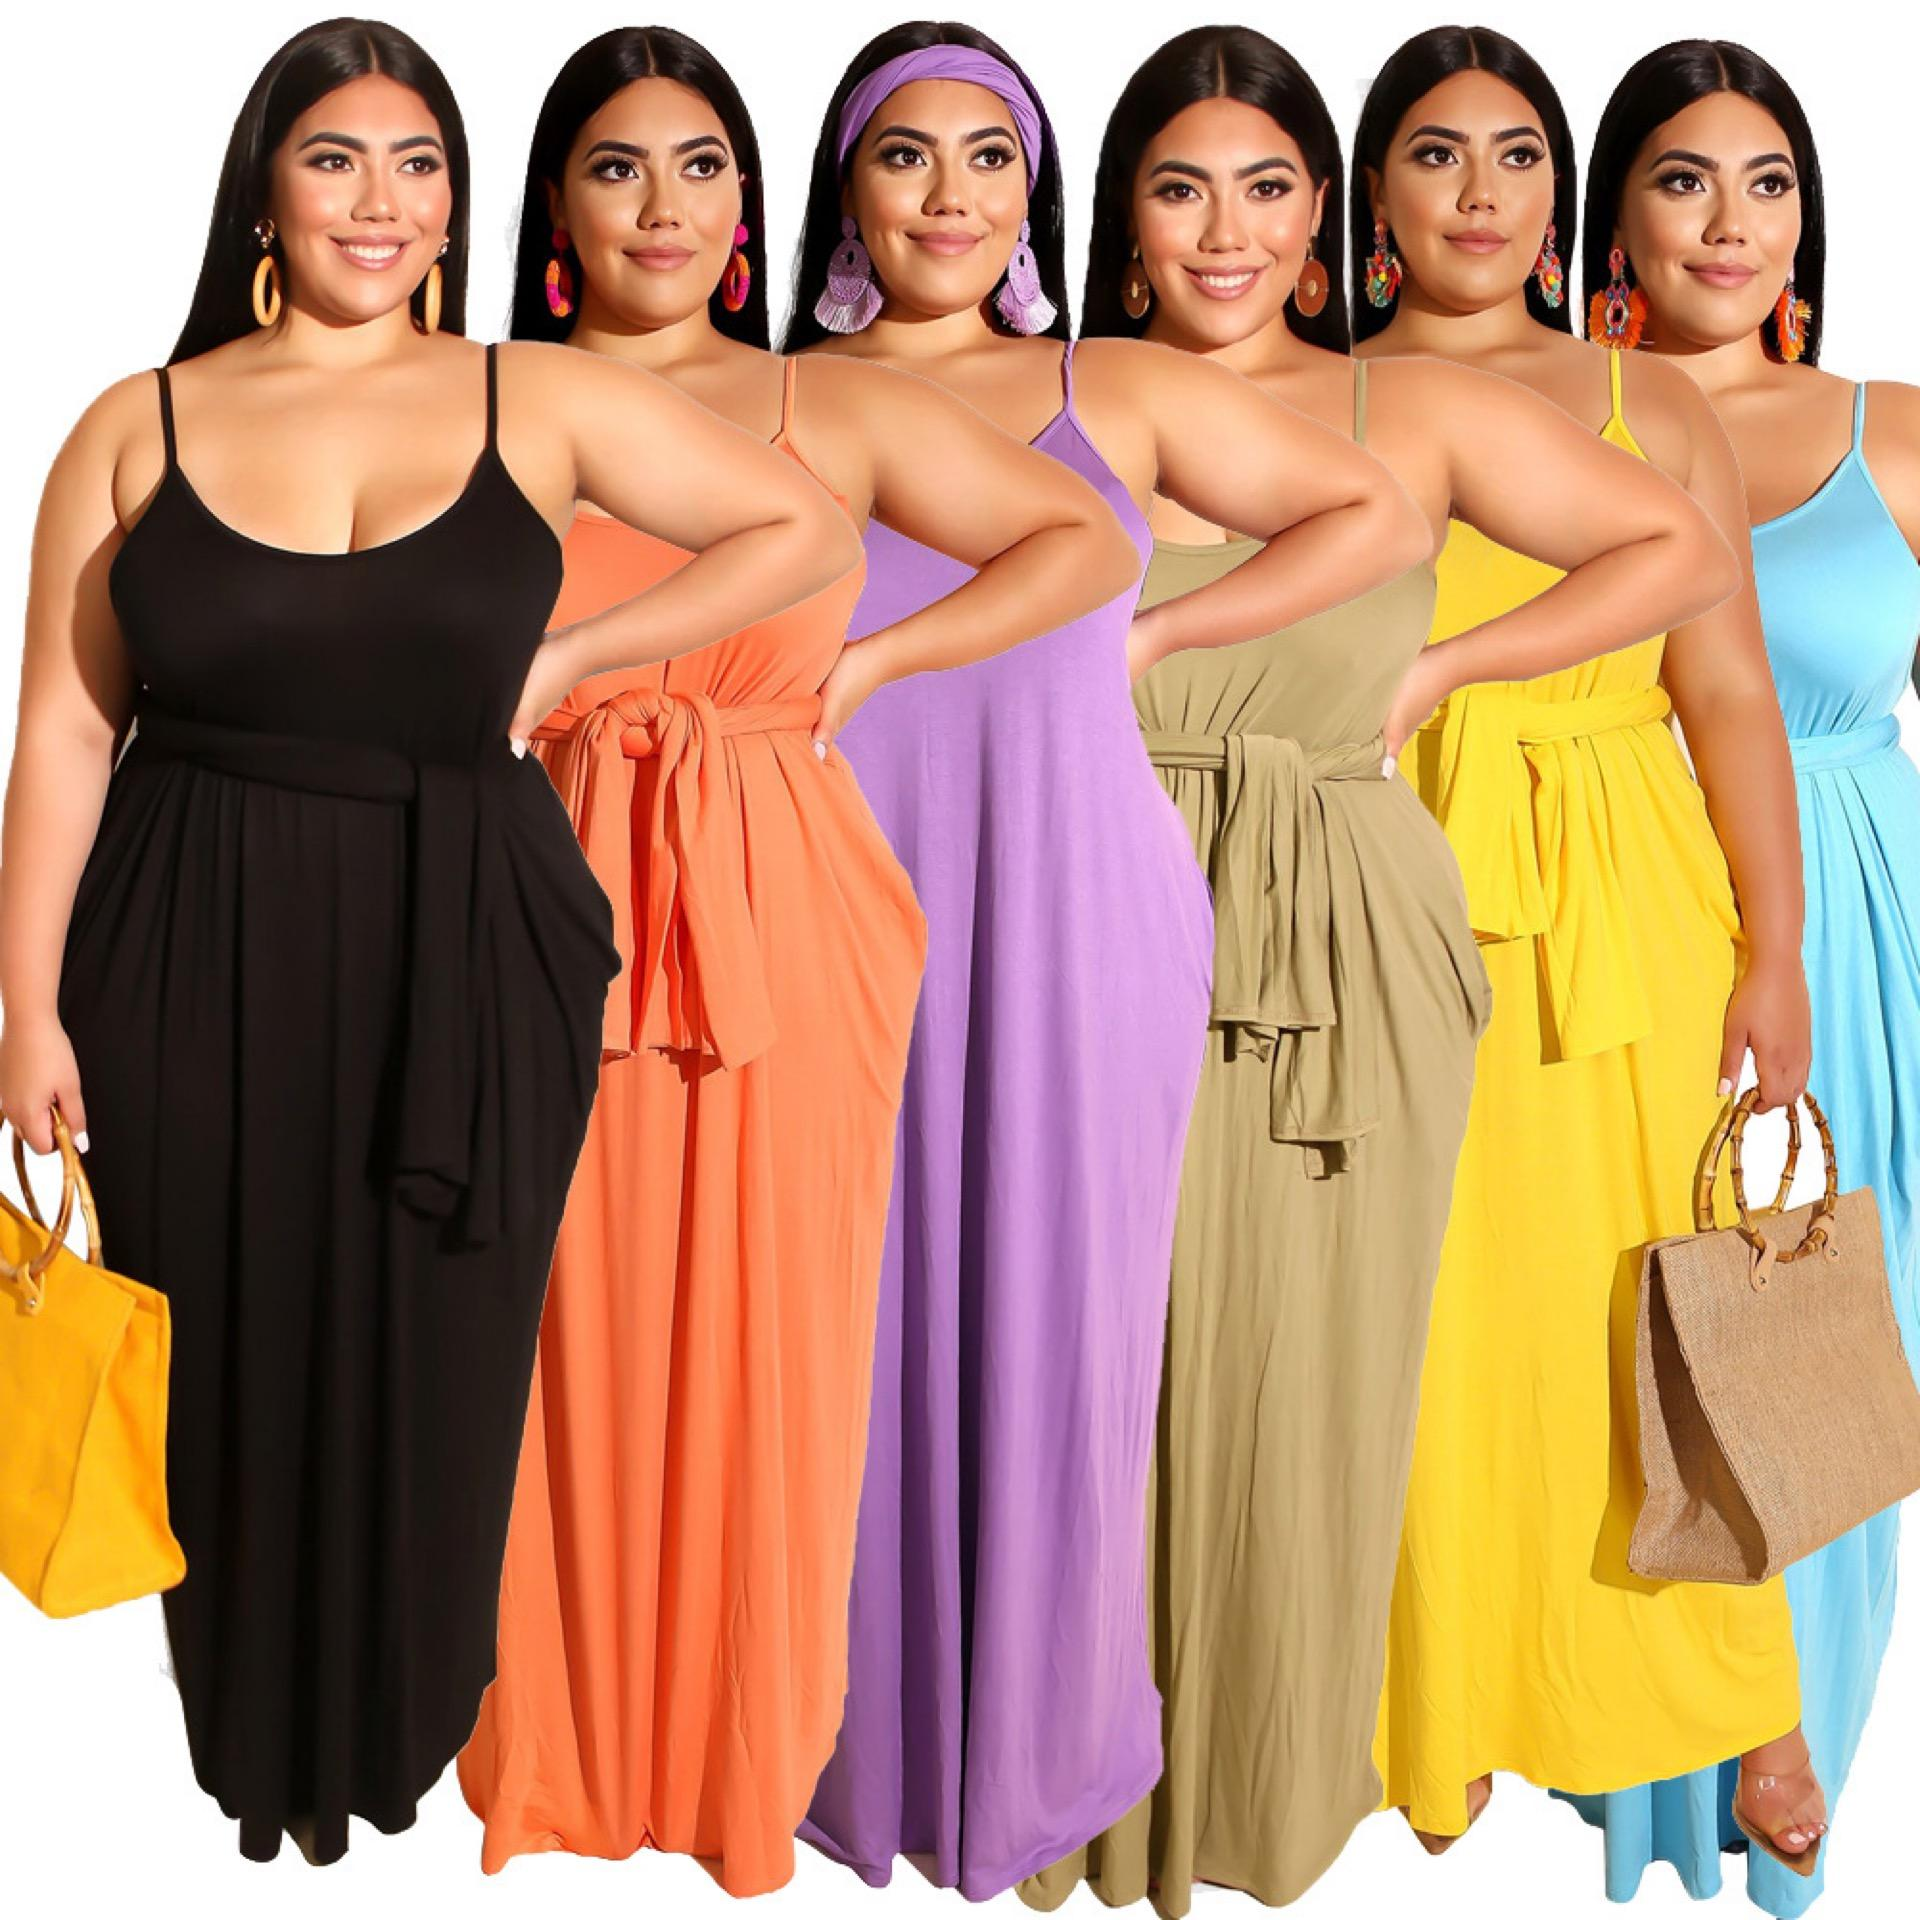 Plus size women's fashion solid color sling invisible pocket casual dress ladies dress